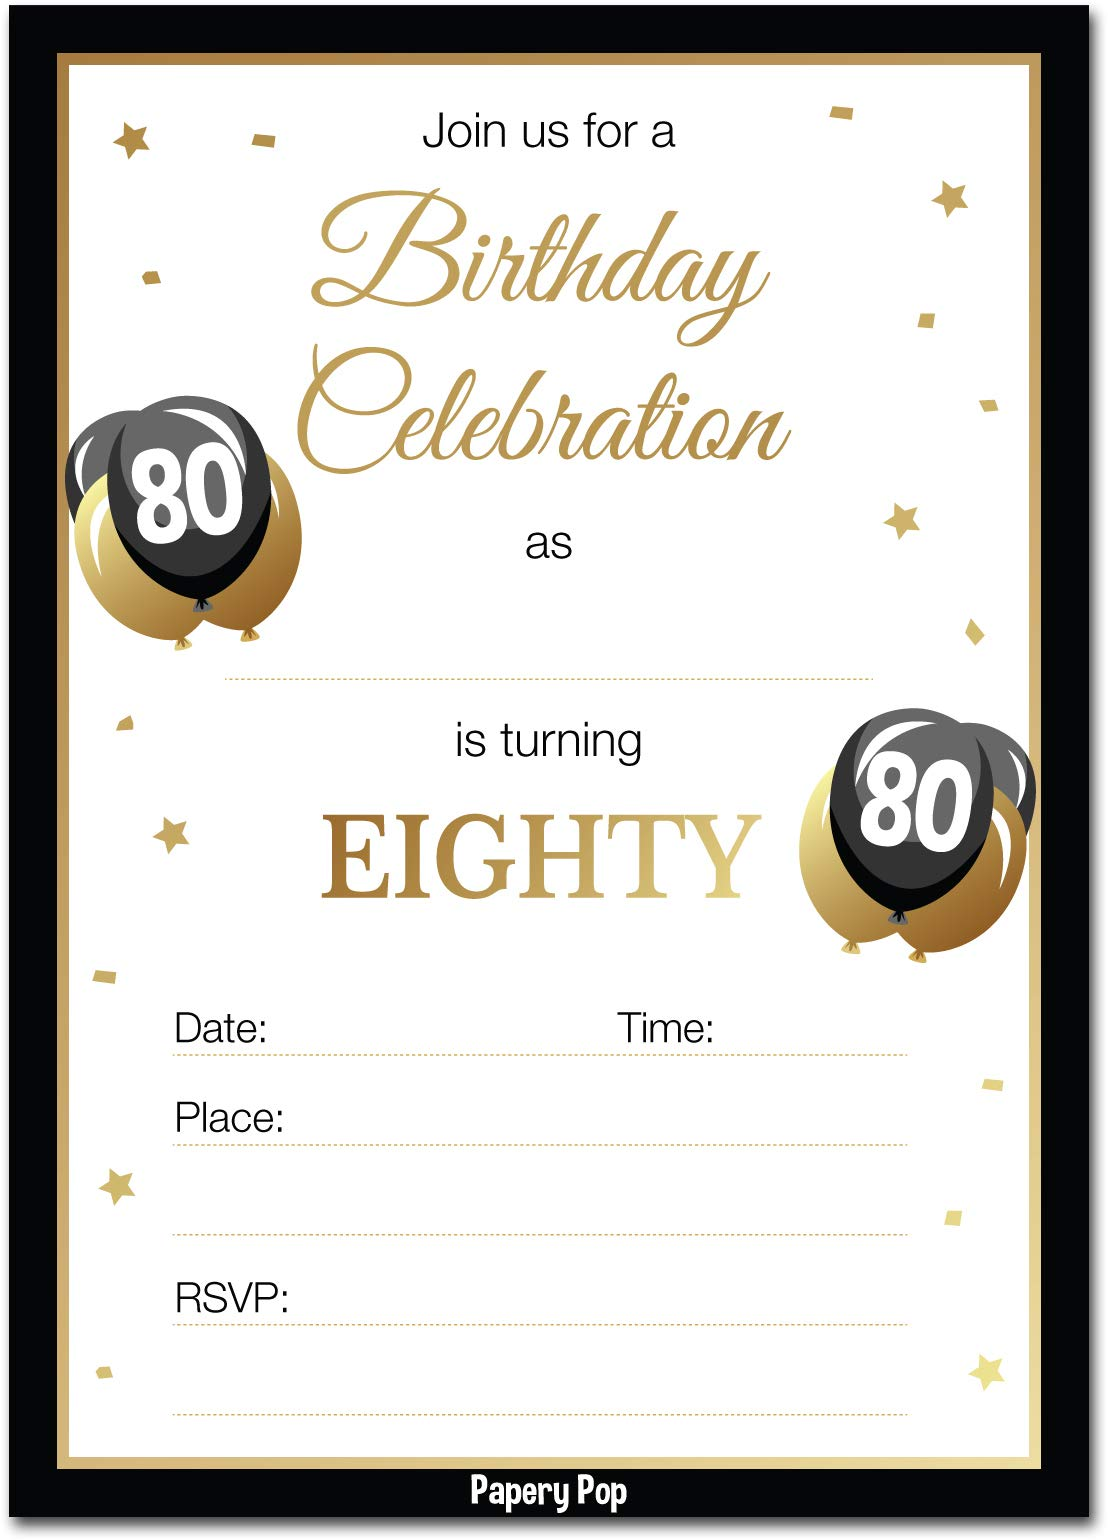 80th Birthday Invitations with Envelopes (30 Pack) - 80 Eighty Year Old Anniversary Party Celebration Invites Cards by Papery Pop